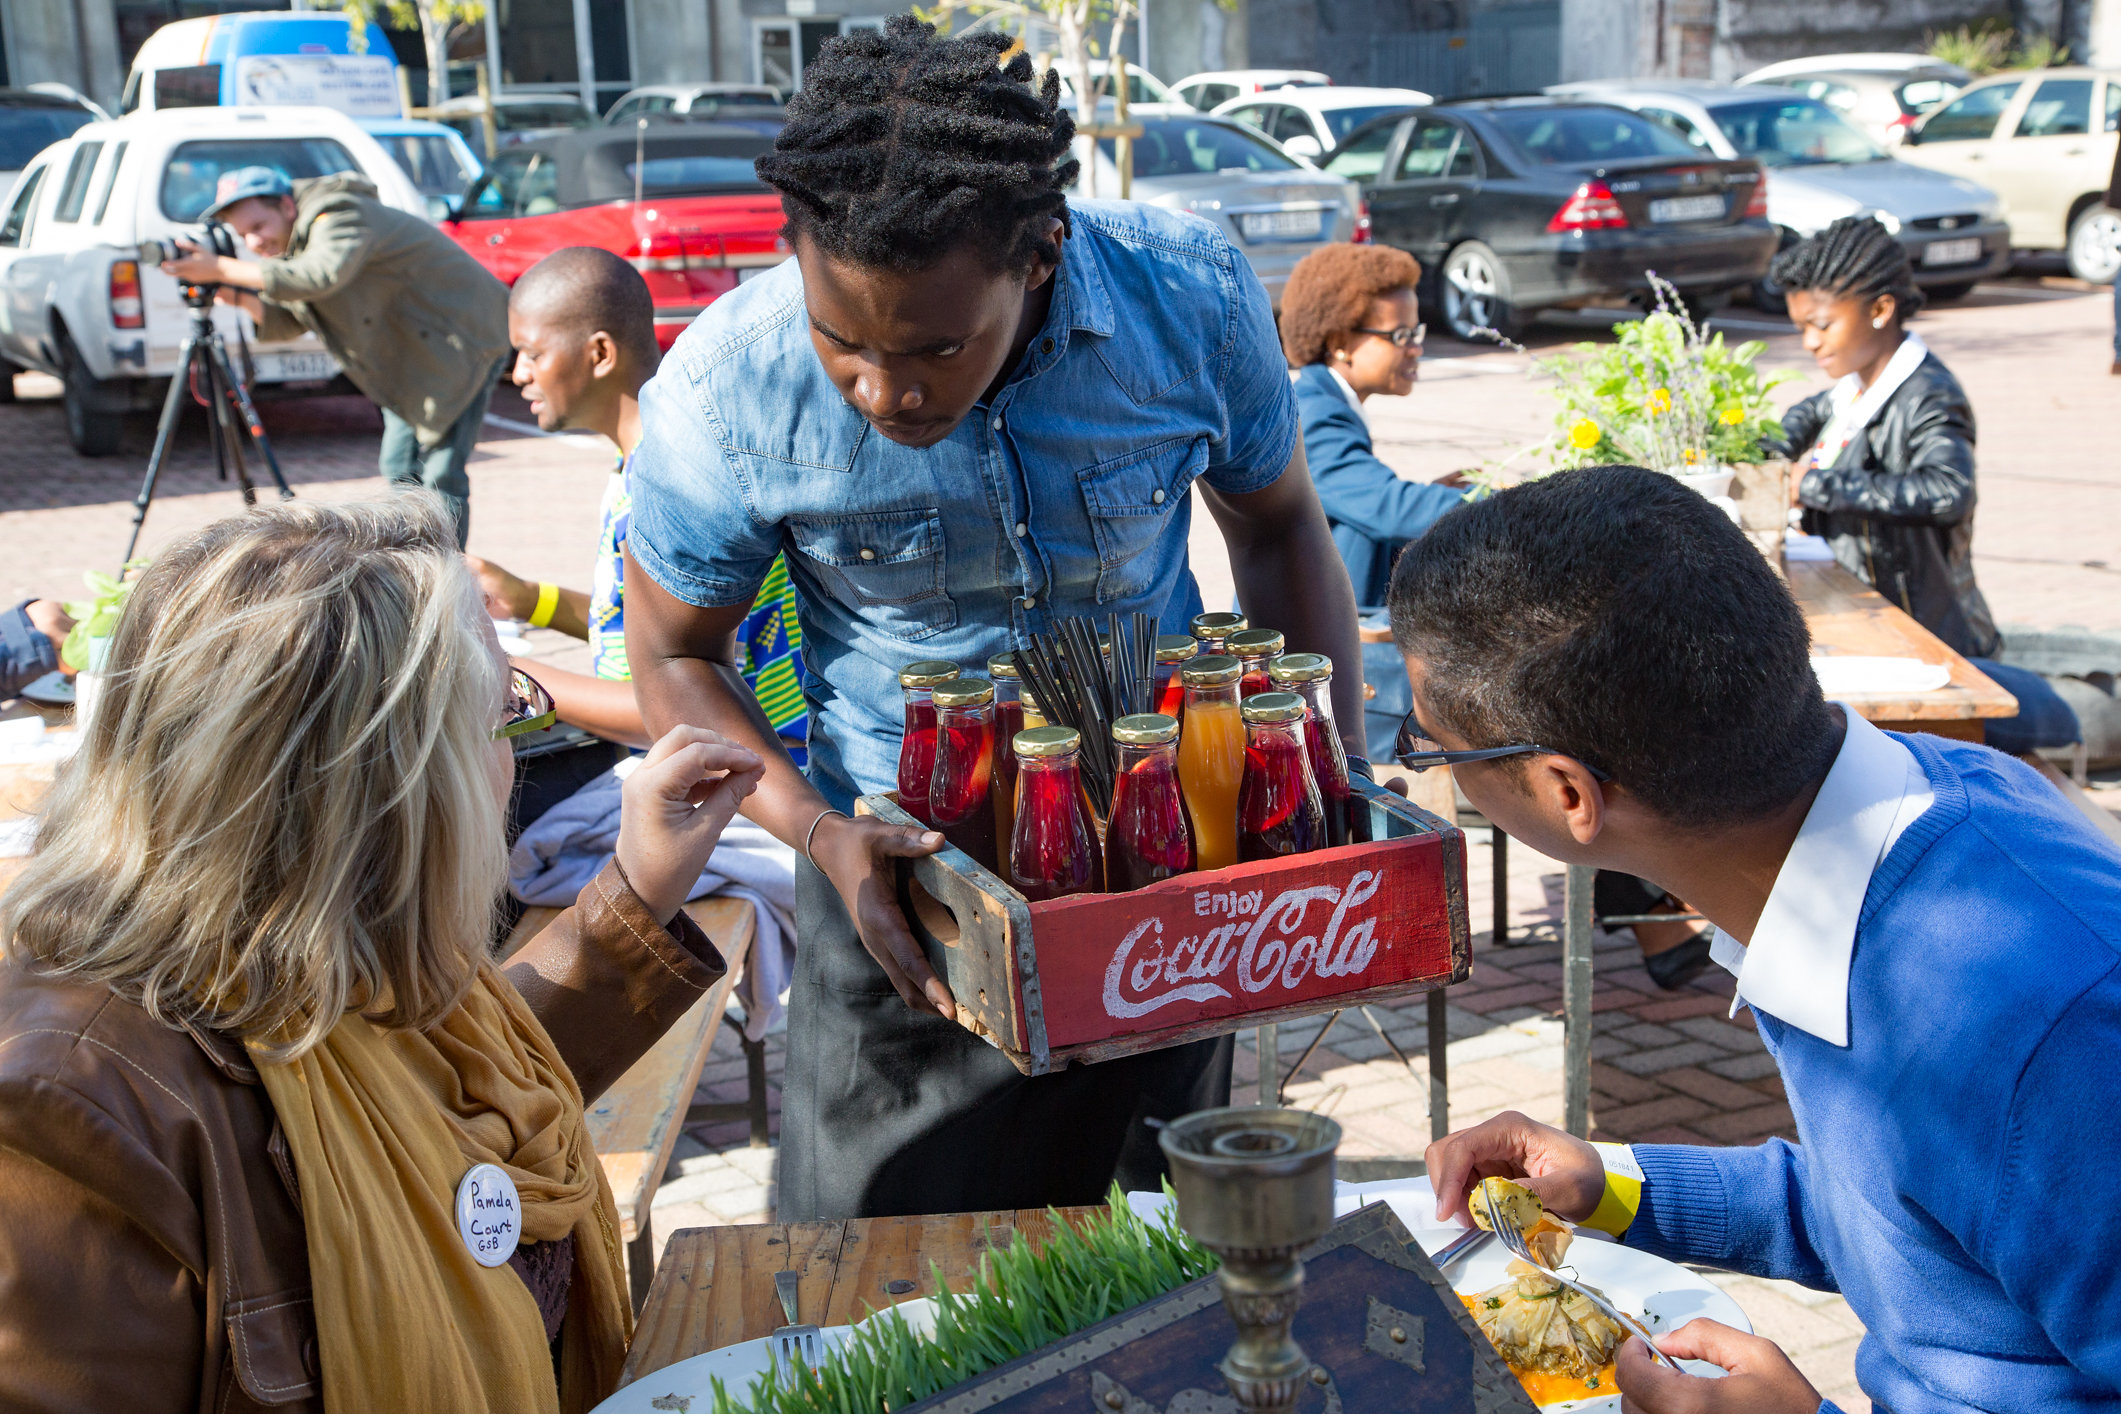 A FOOD TRUCK EVENT BY 4ROOMED. CREDIT: 4ROOMED EKASI CULTURE